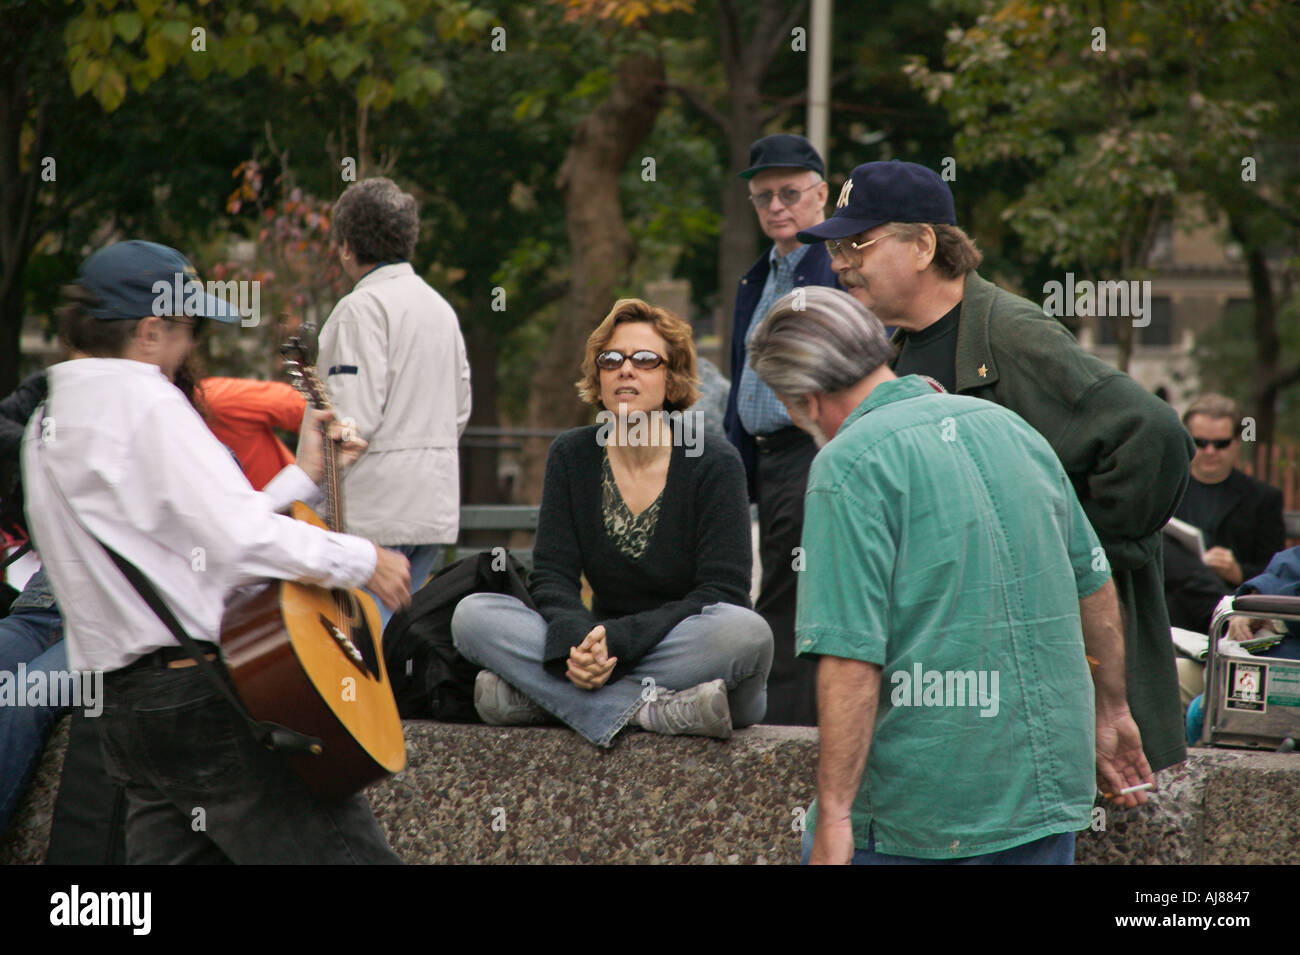 Greenwich Village residents gather to make and listen to music at Washington Square Park New York NY no model release editor - Stock Image